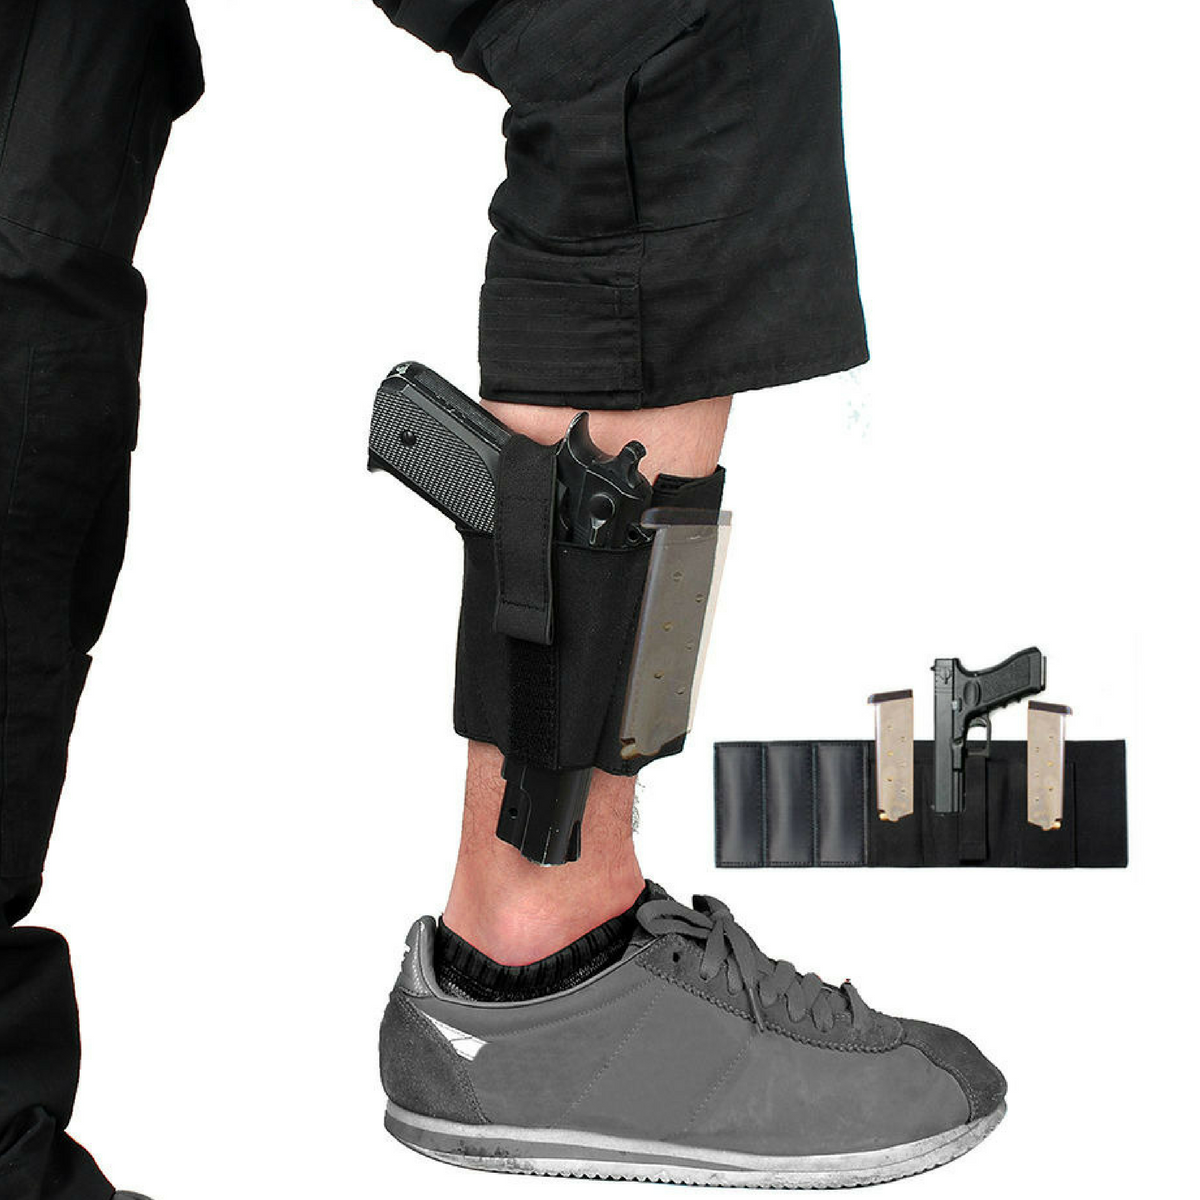 FREE Ankle Holster - 2 Mag Holders